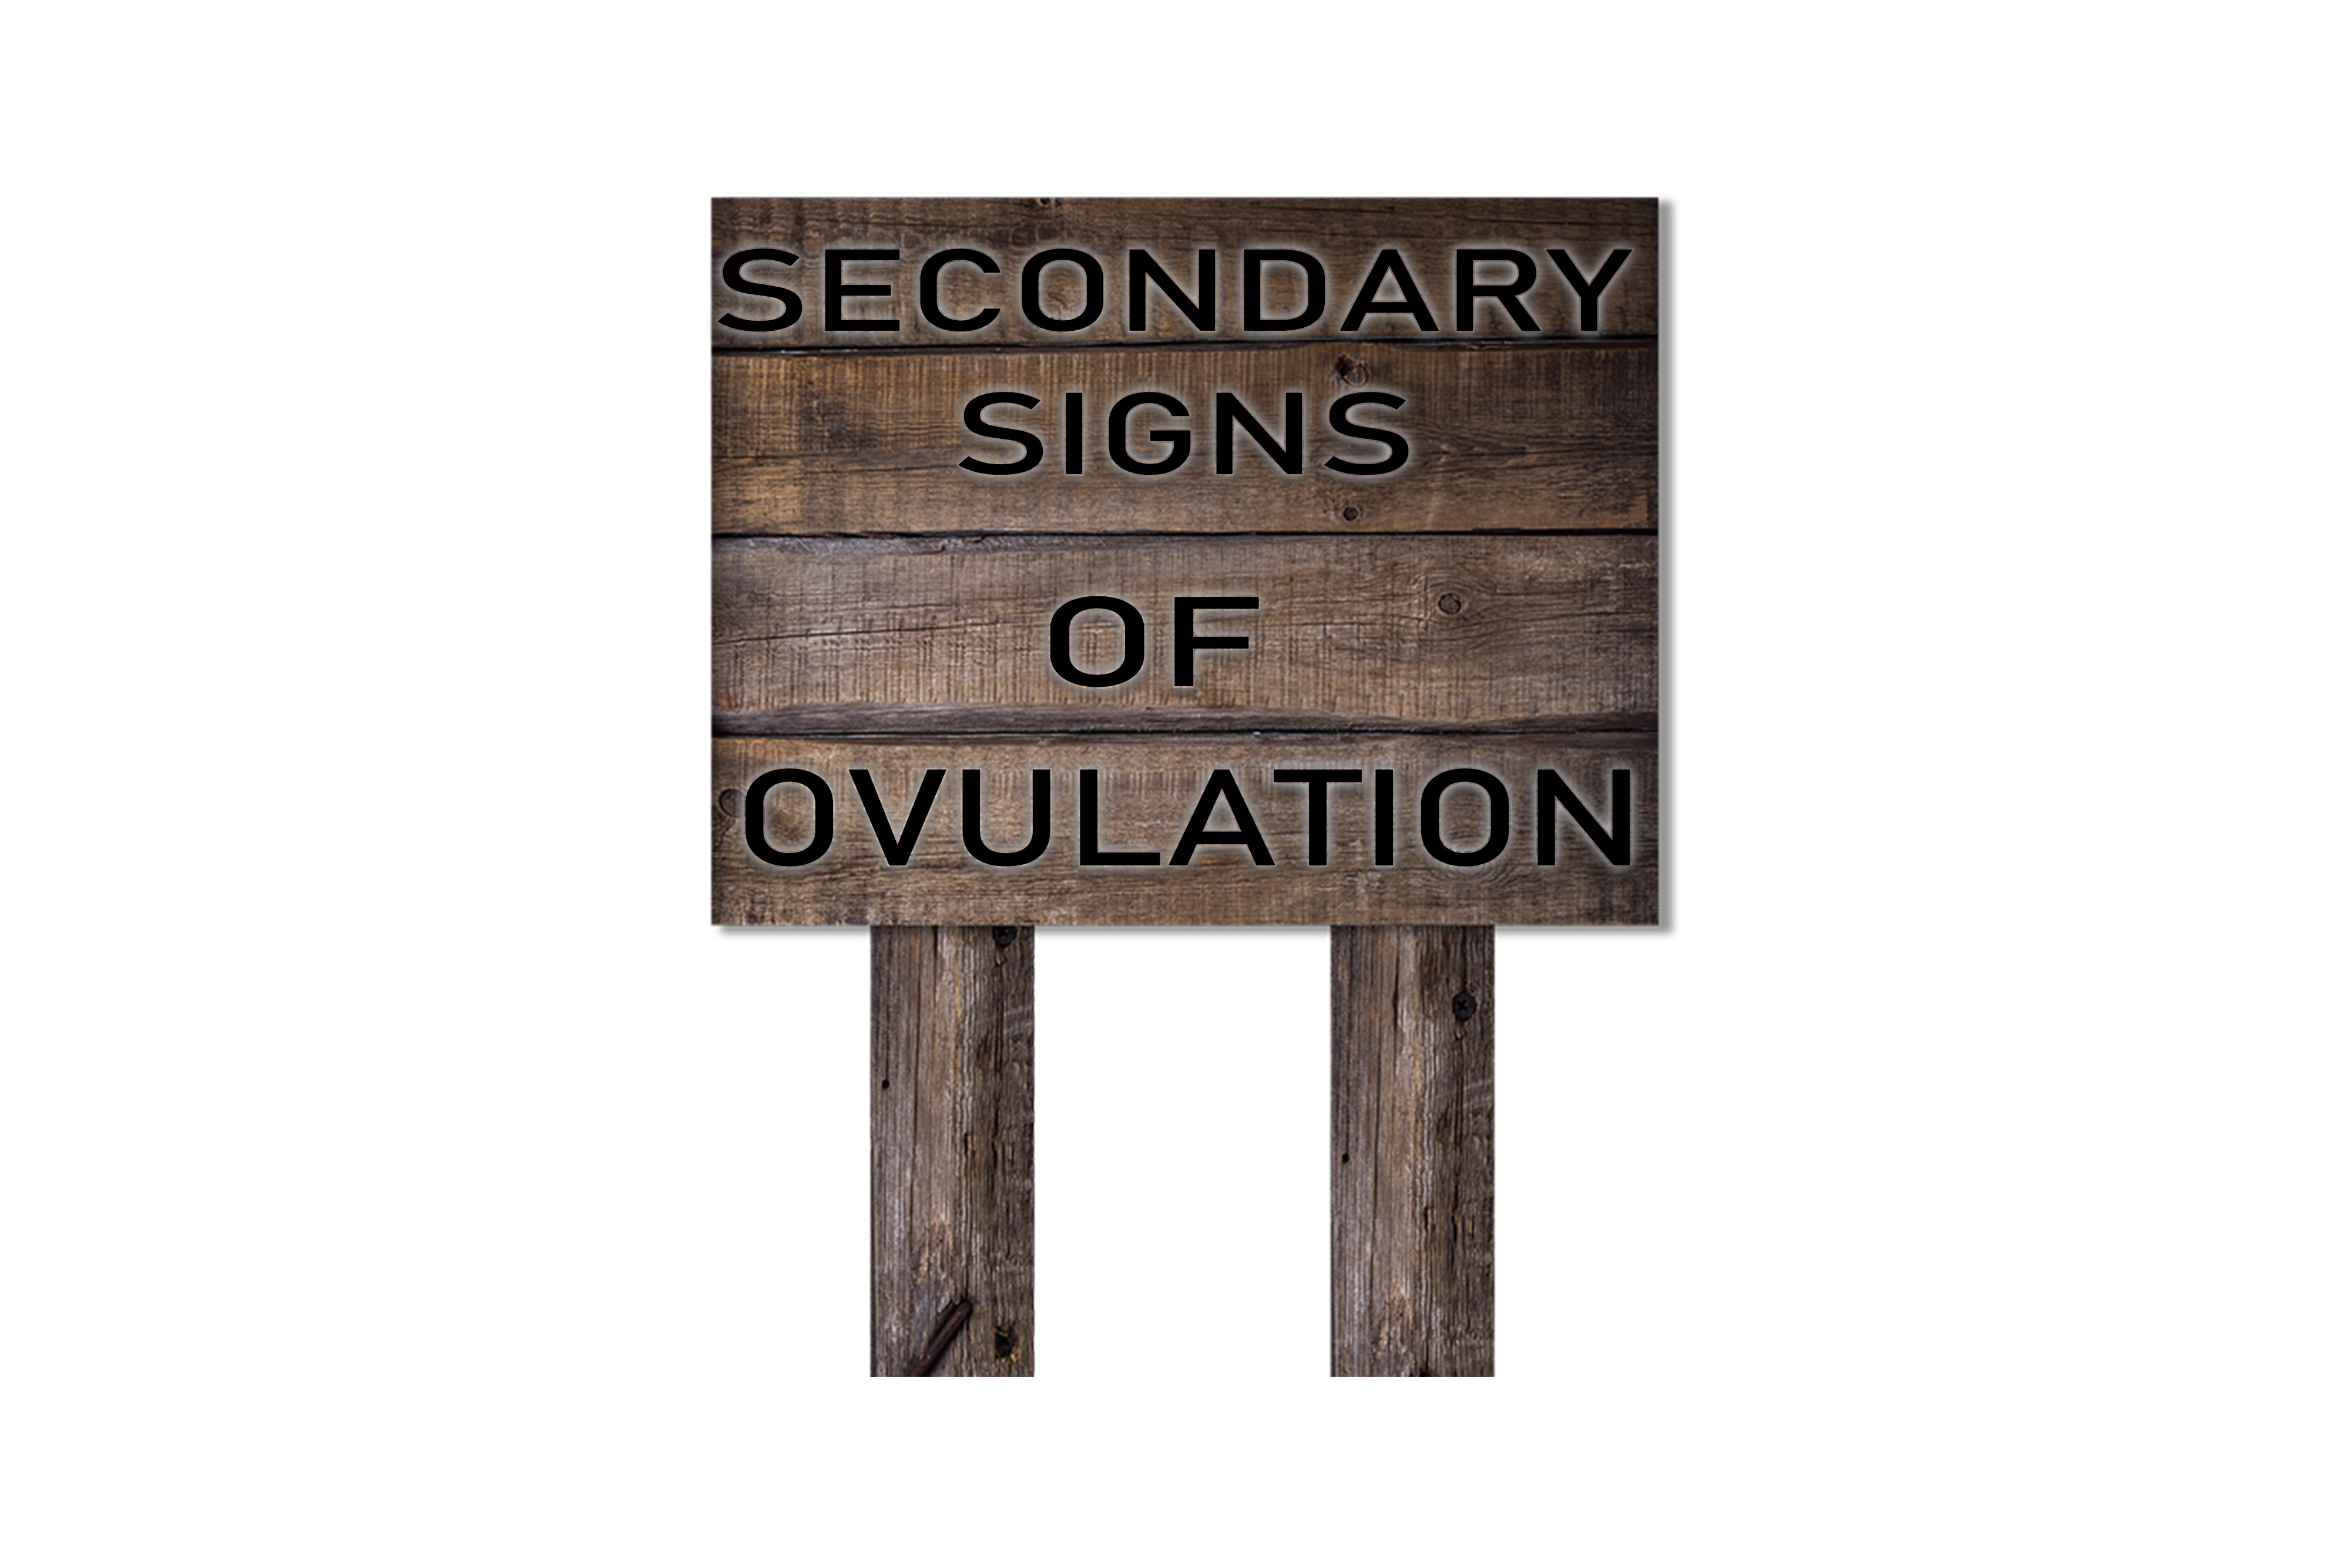 SECONDARY SIGNS OF OVULATION